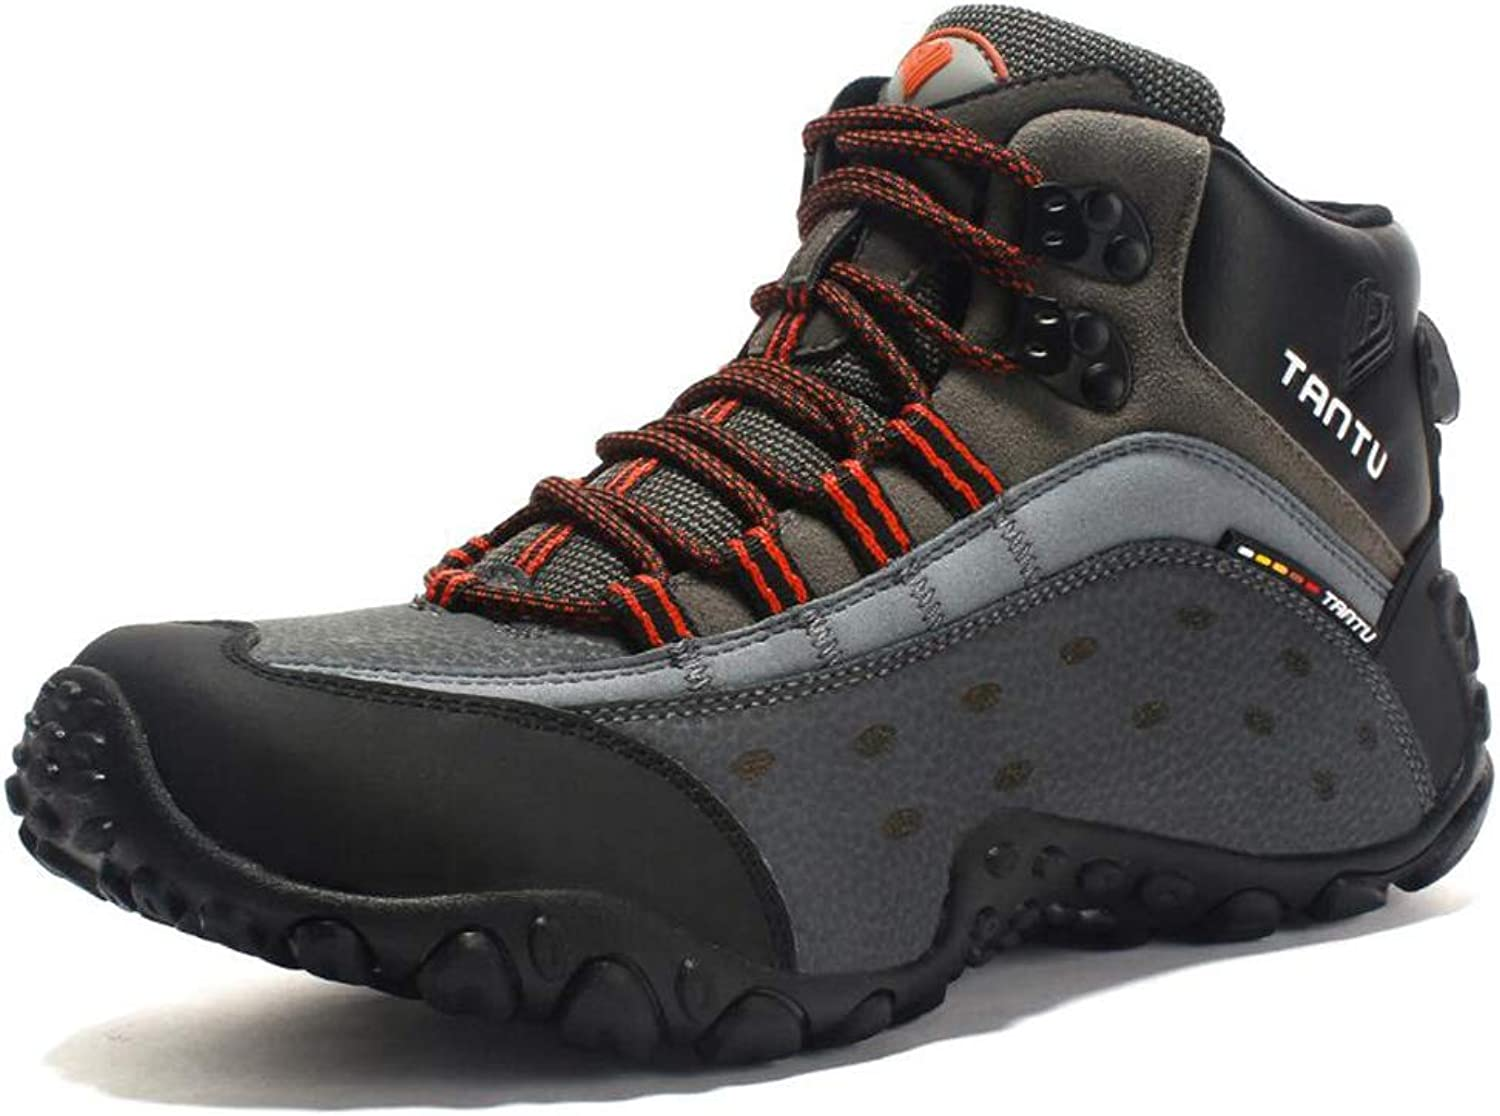 Zxcvb Kids Casual Outdoor Basketball shoes Autumn and winter leather high men's outdoor hiking shoes hiking shoes